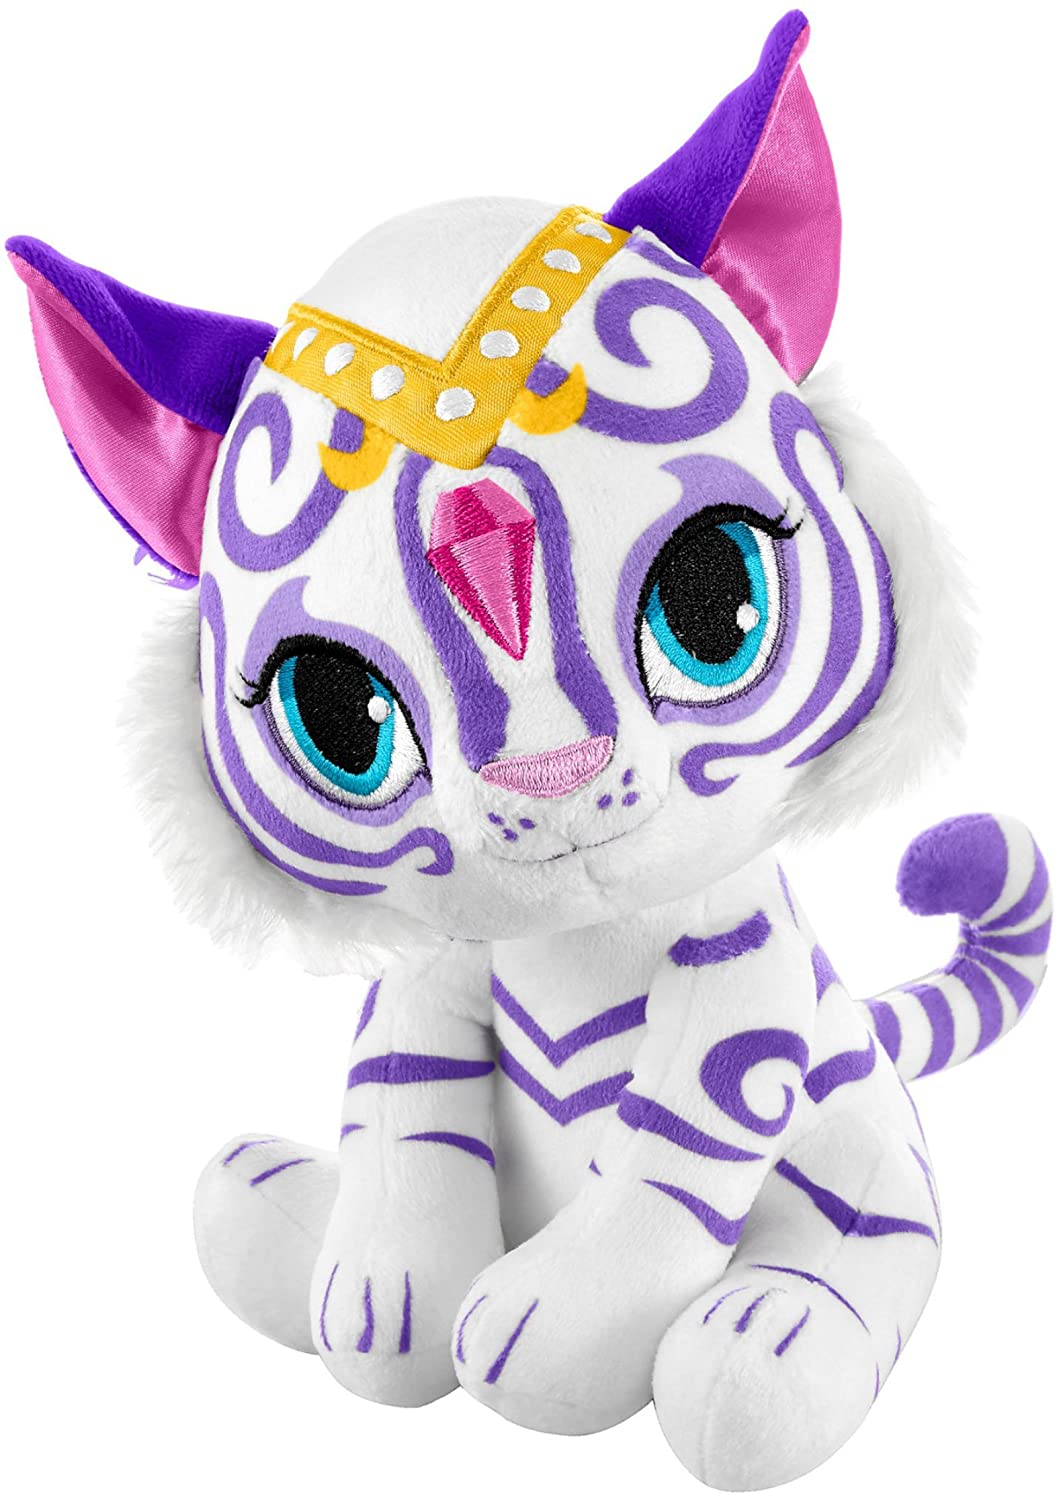 Fisher-Price Nickelodeon Shimmer & Shine, Zahramay Plush Friends, Nahal FLY22